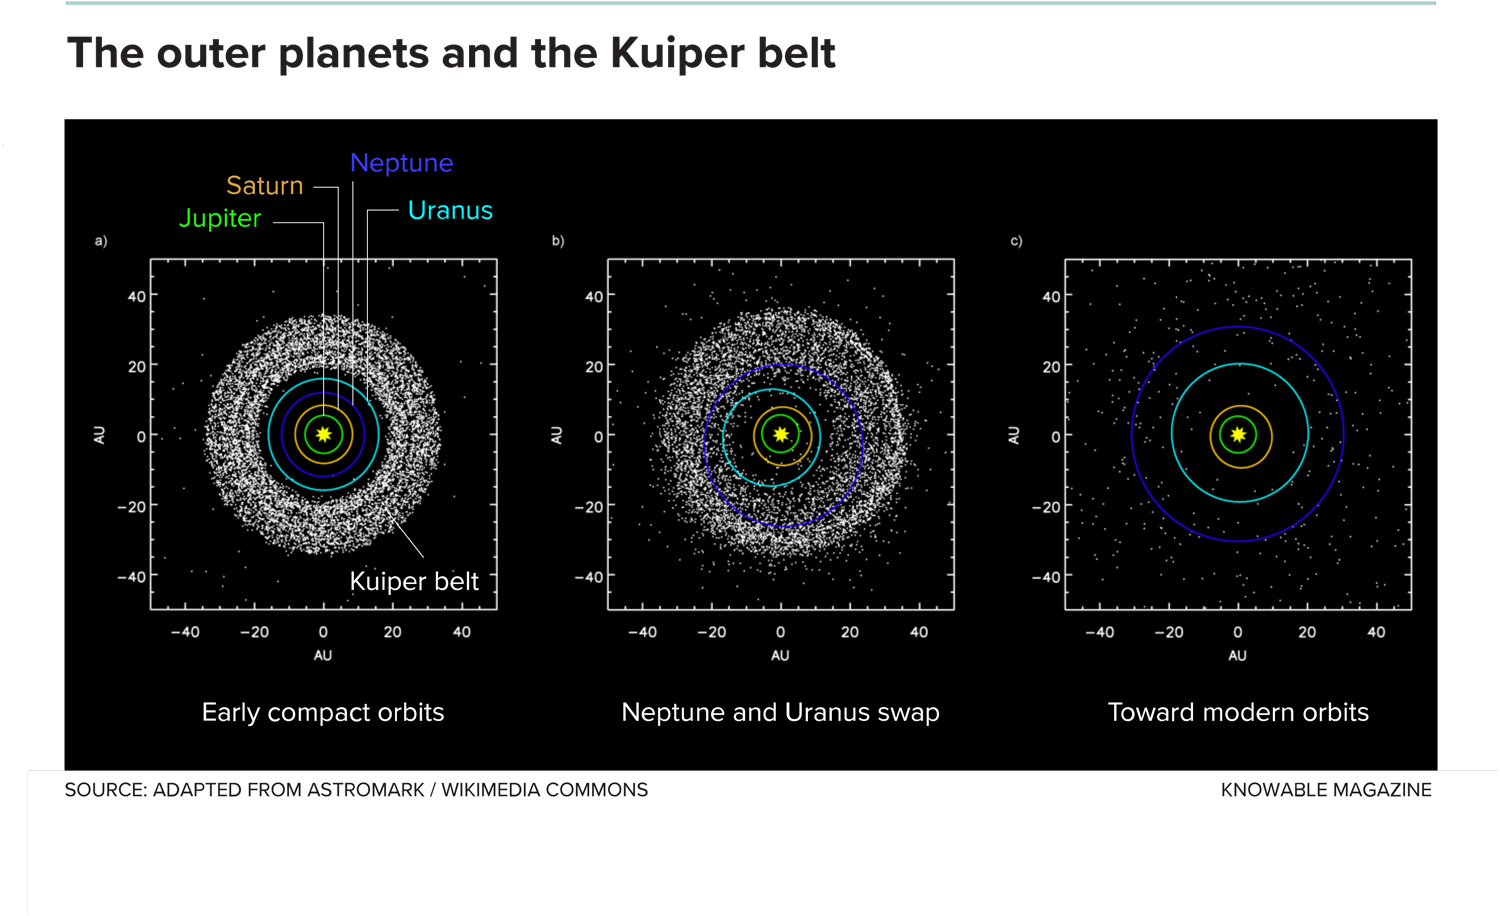 This simulation shows how a compact configuration for the outer planets (left) might evolve over time. Jupiter and Saturn sync their orbits (middle), which causes the orbits of all the planets to change. In this particular run, Uranus and Neptune swap places. Over time, (right) debris scatters, some of it settling in the Kuiper belt, as the planets head toward their modern orbits.